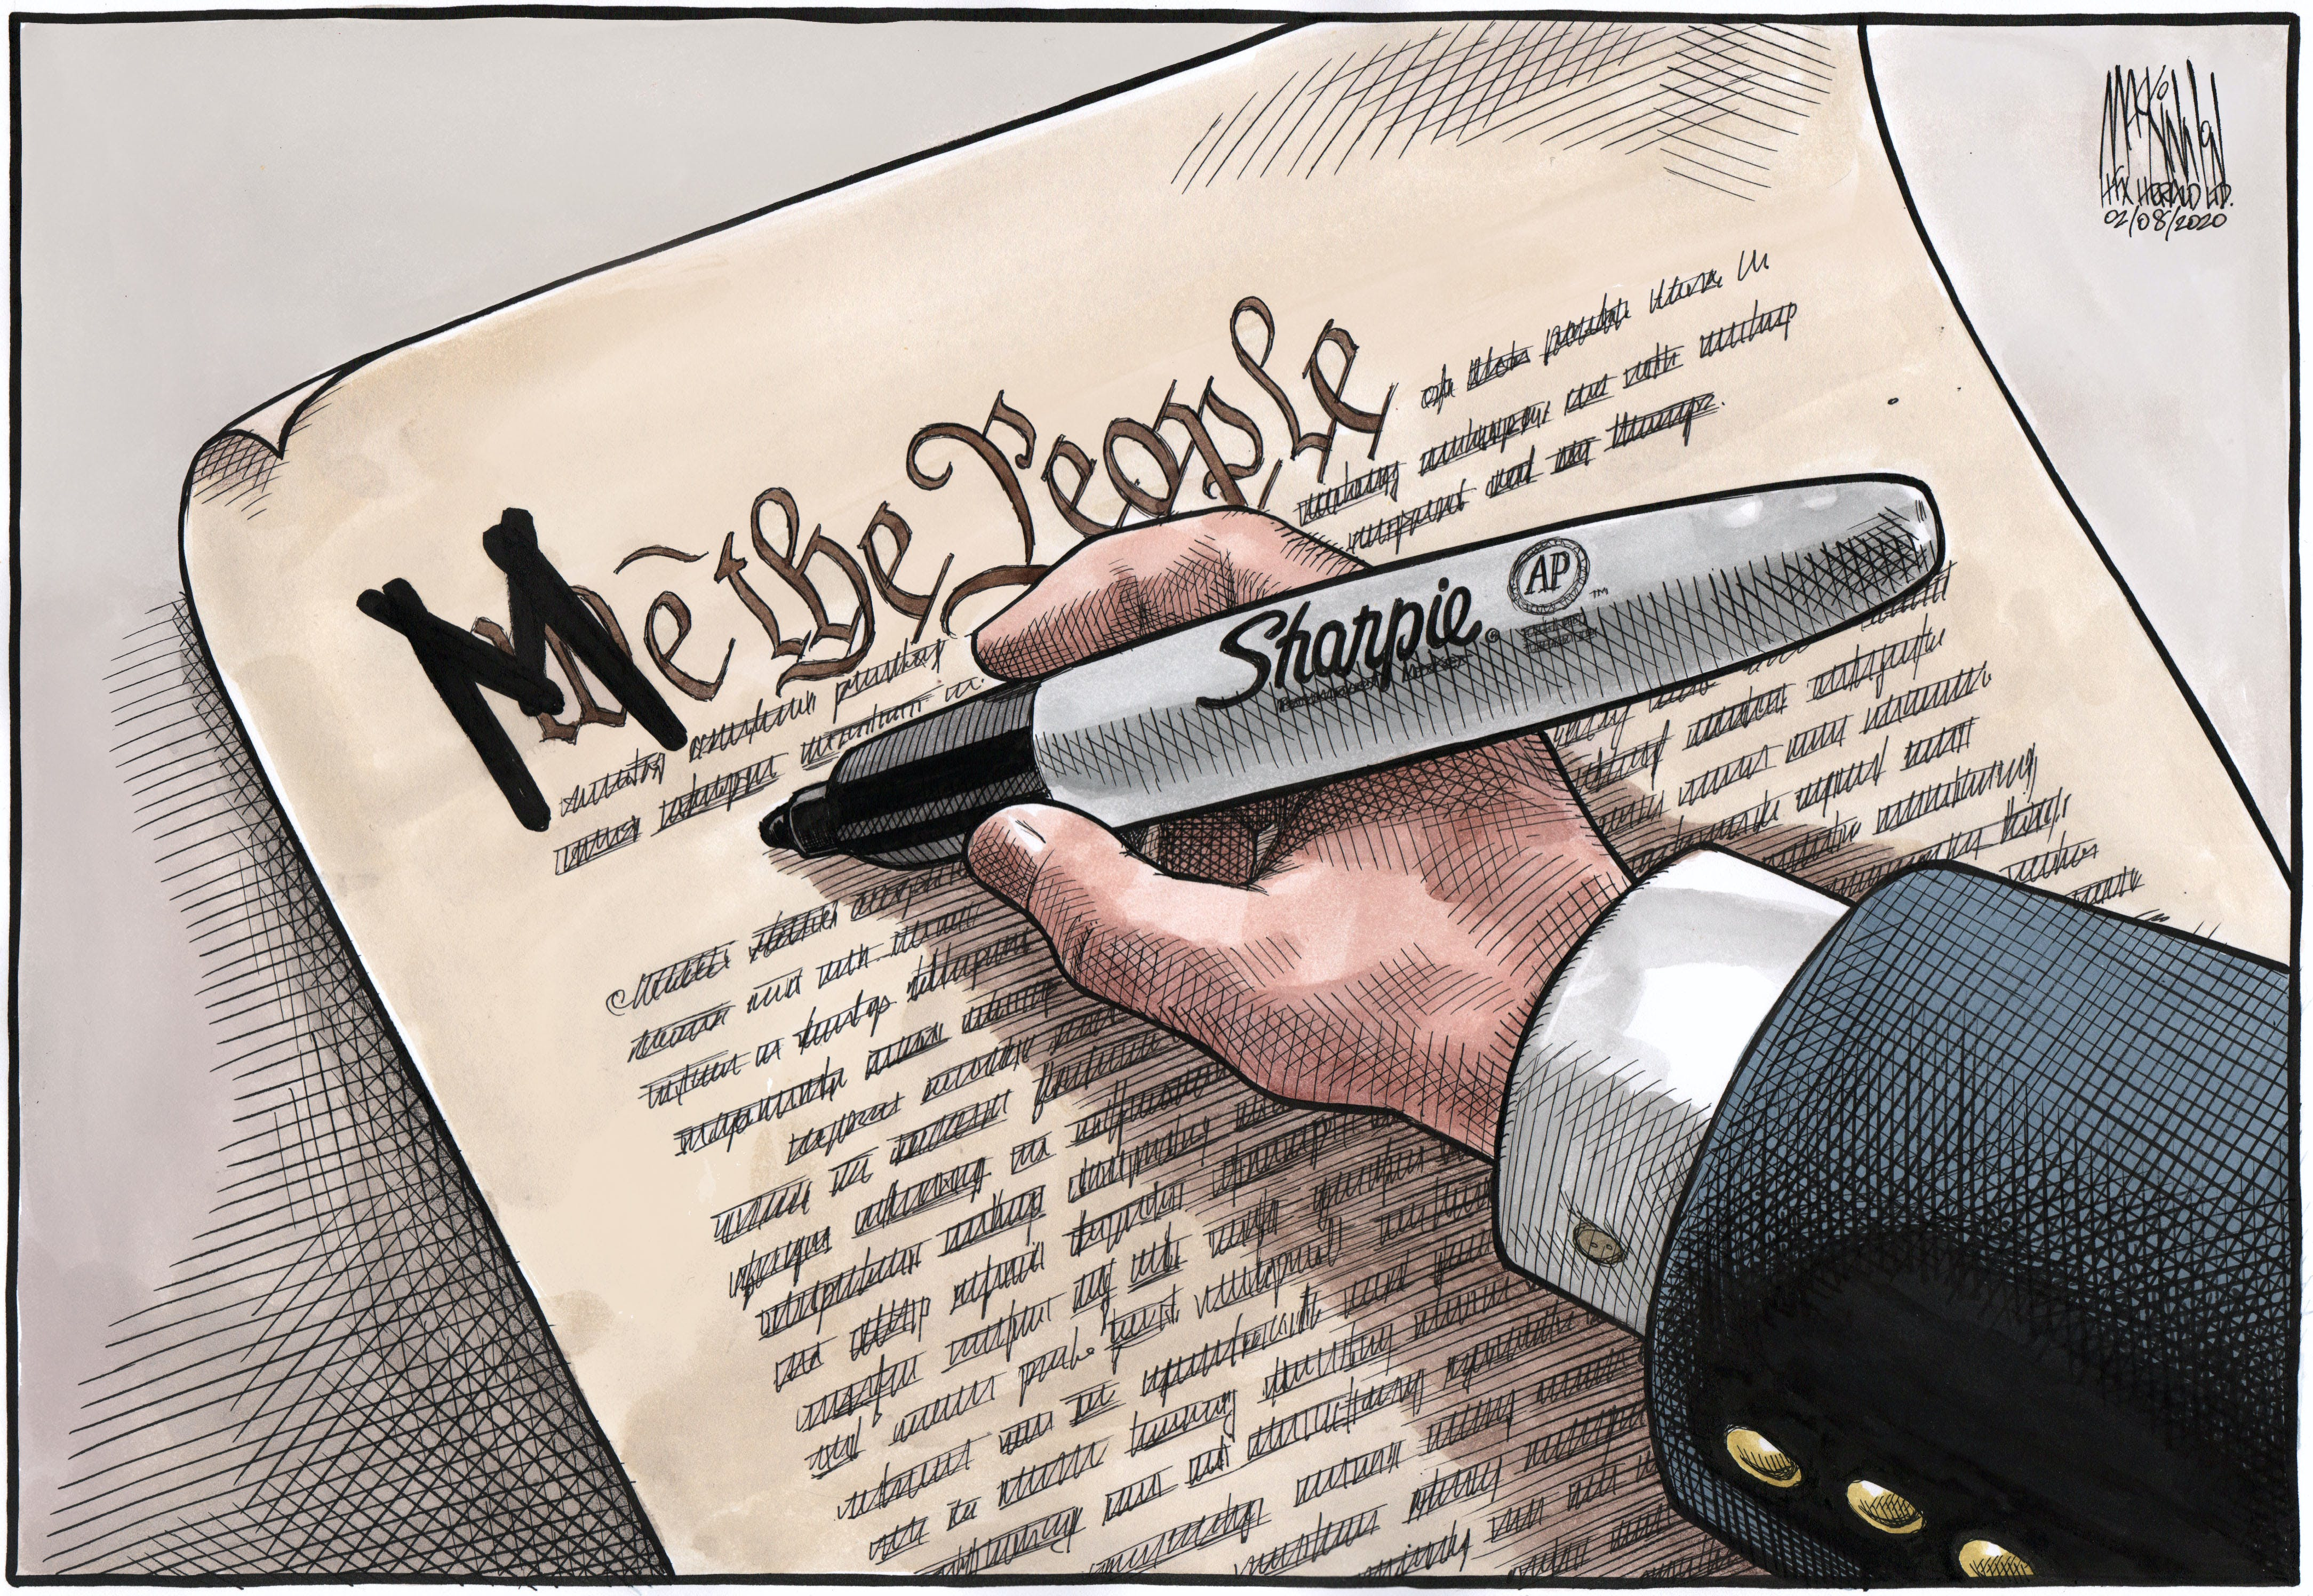 Bruce MacKinnon's editorial cartoon for FEb. 8, 2020. President Donald Trump, United States Constitution, U.S., US, impeachment, acquittal, legal battle, presidential powers, office of the president of the united states.